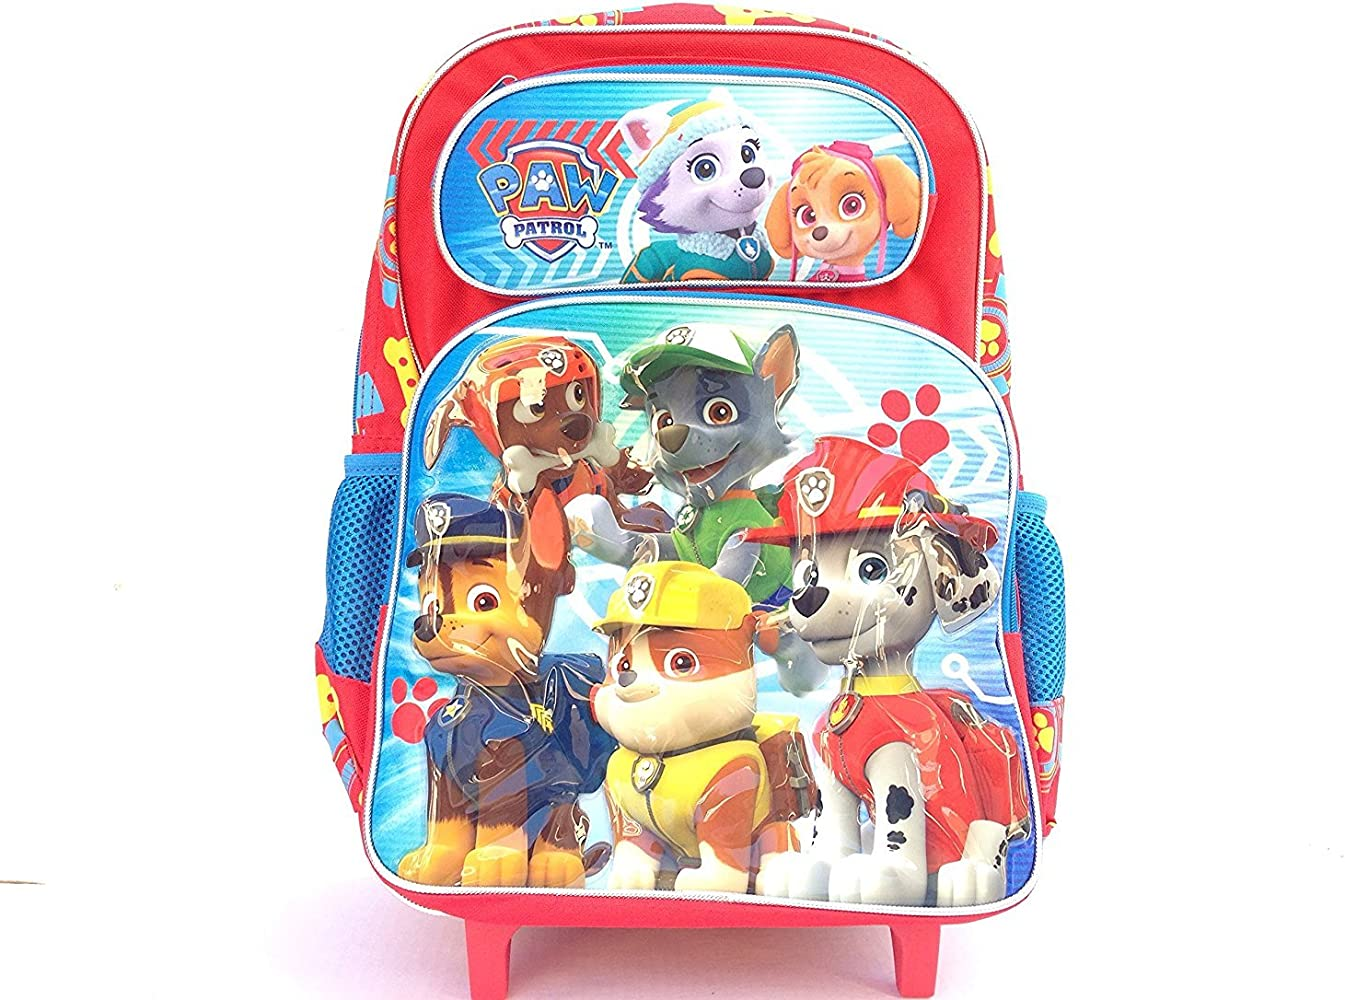 Nickelodeon Paw Patrol Large 16 Inch Rolling Backpack A06007, Red, Large